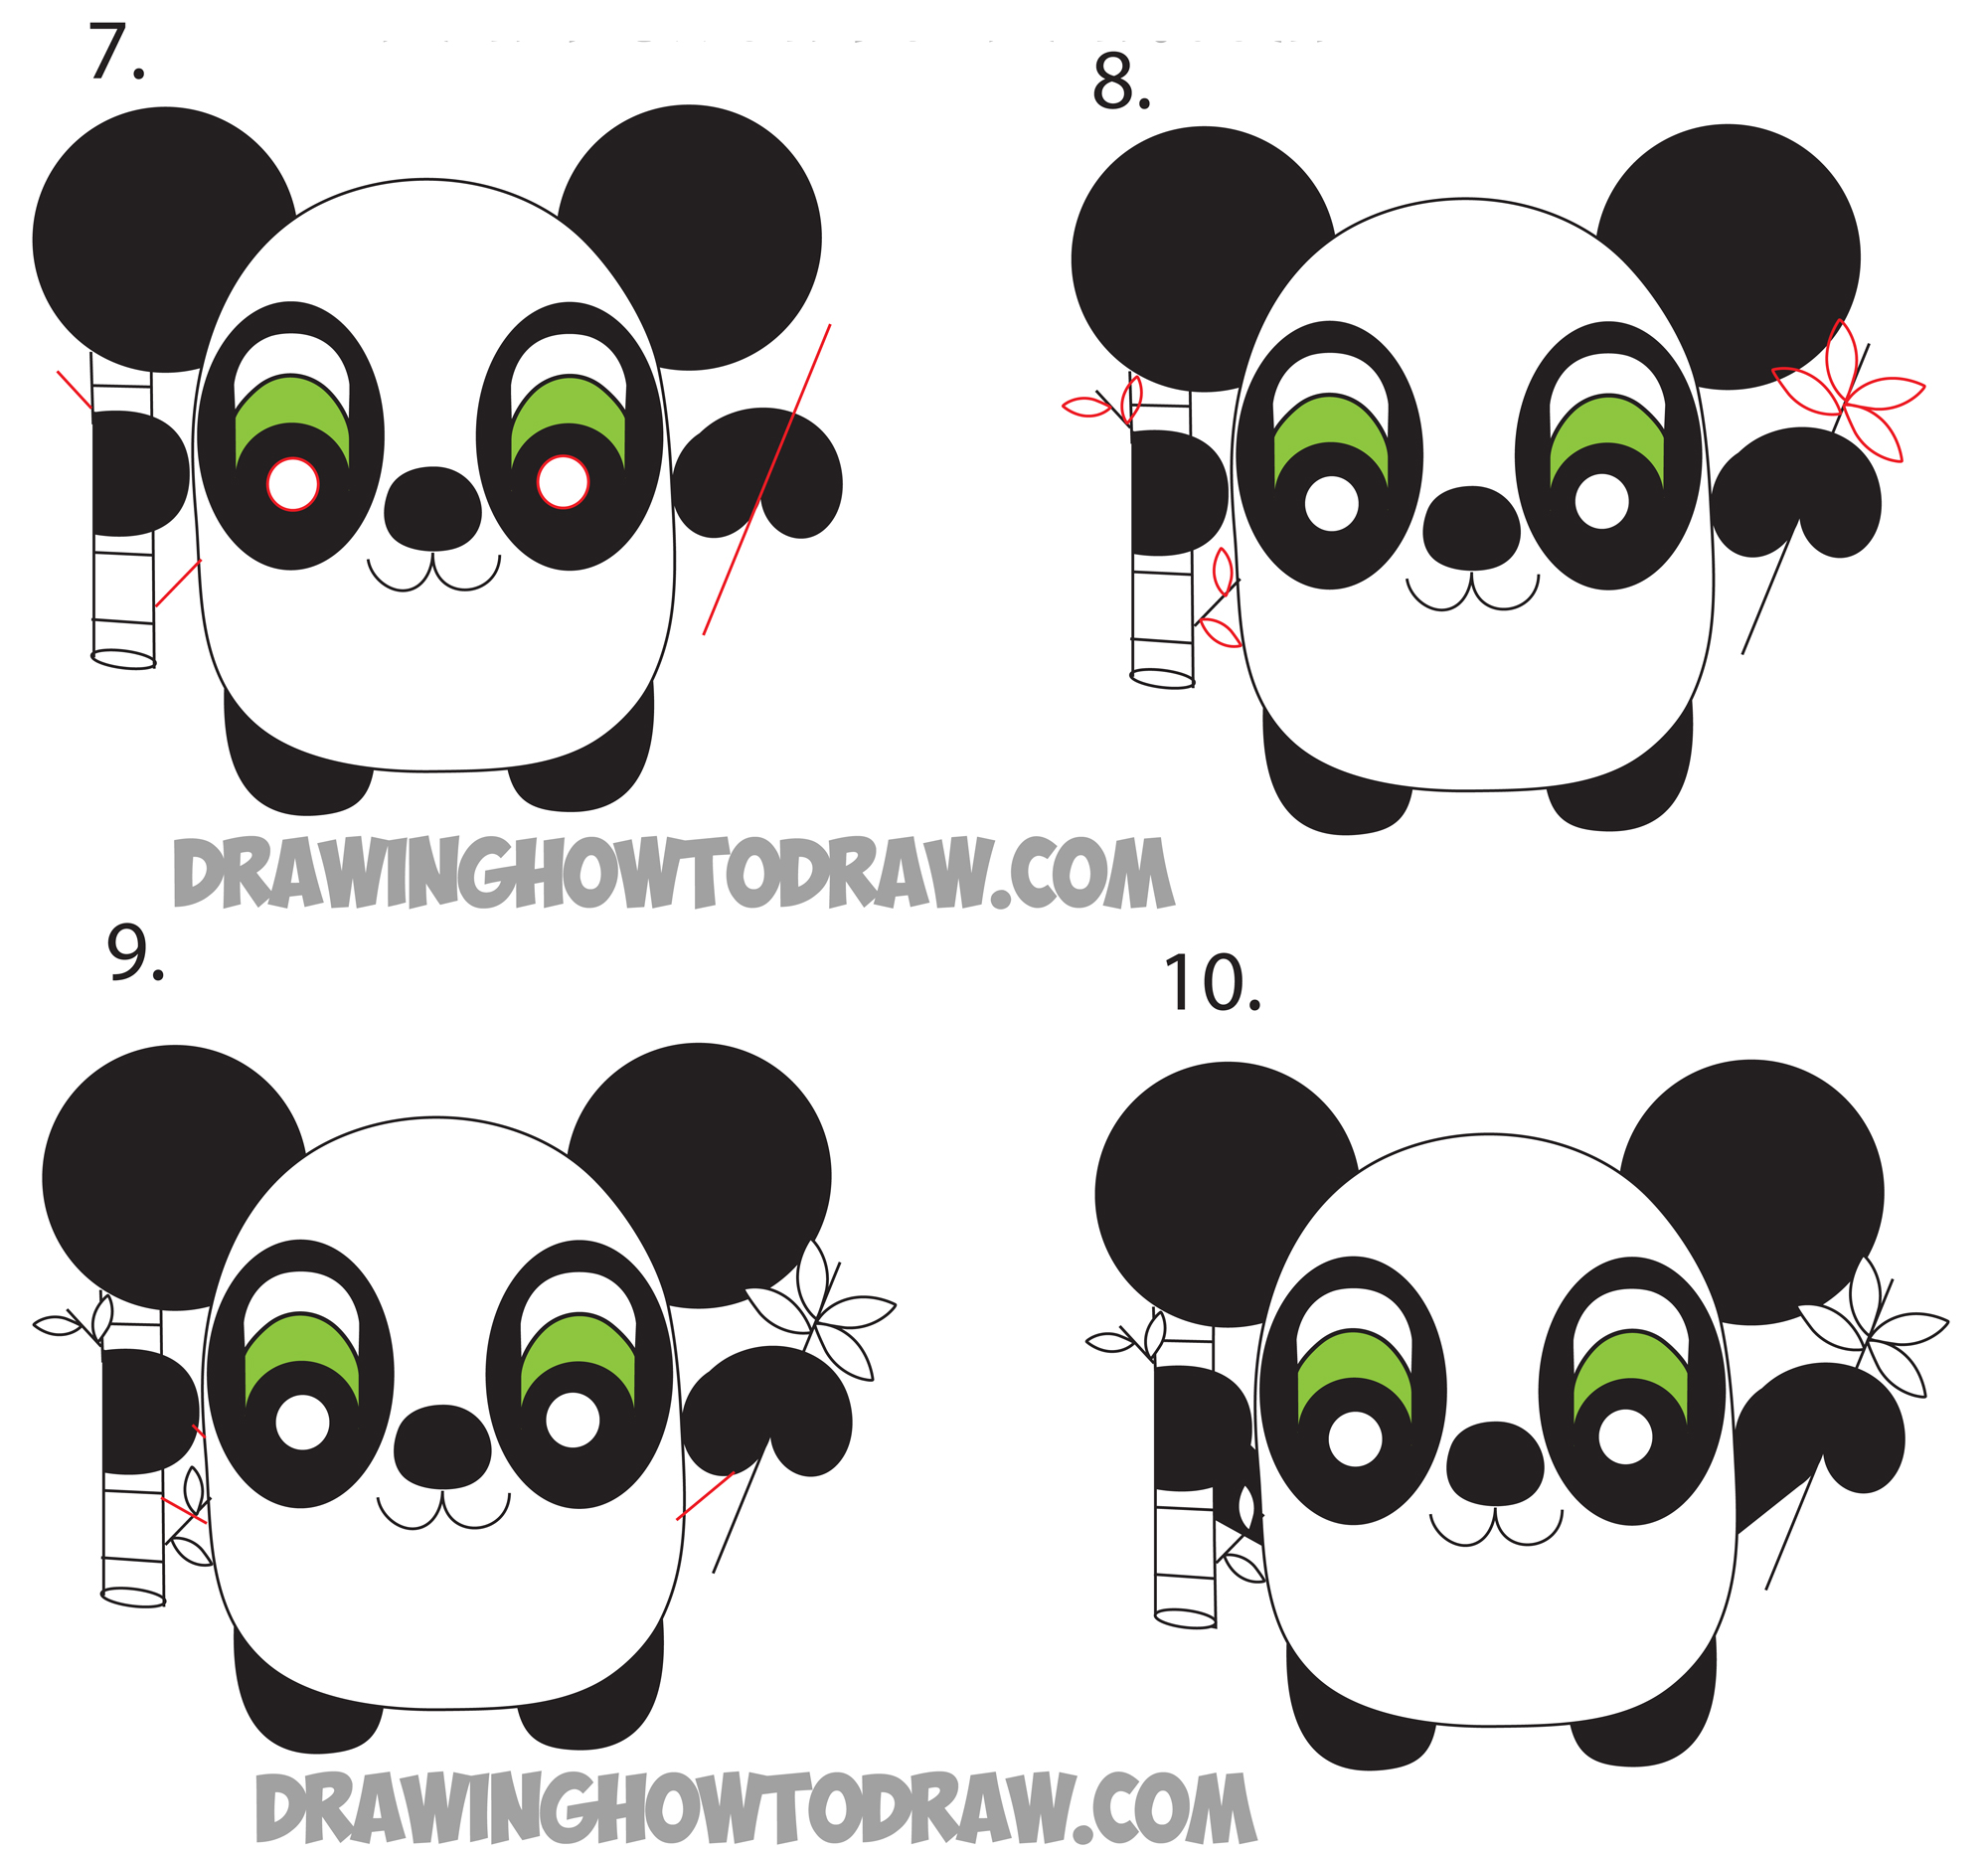 how to draw cartoon pandas from the word panda step by step